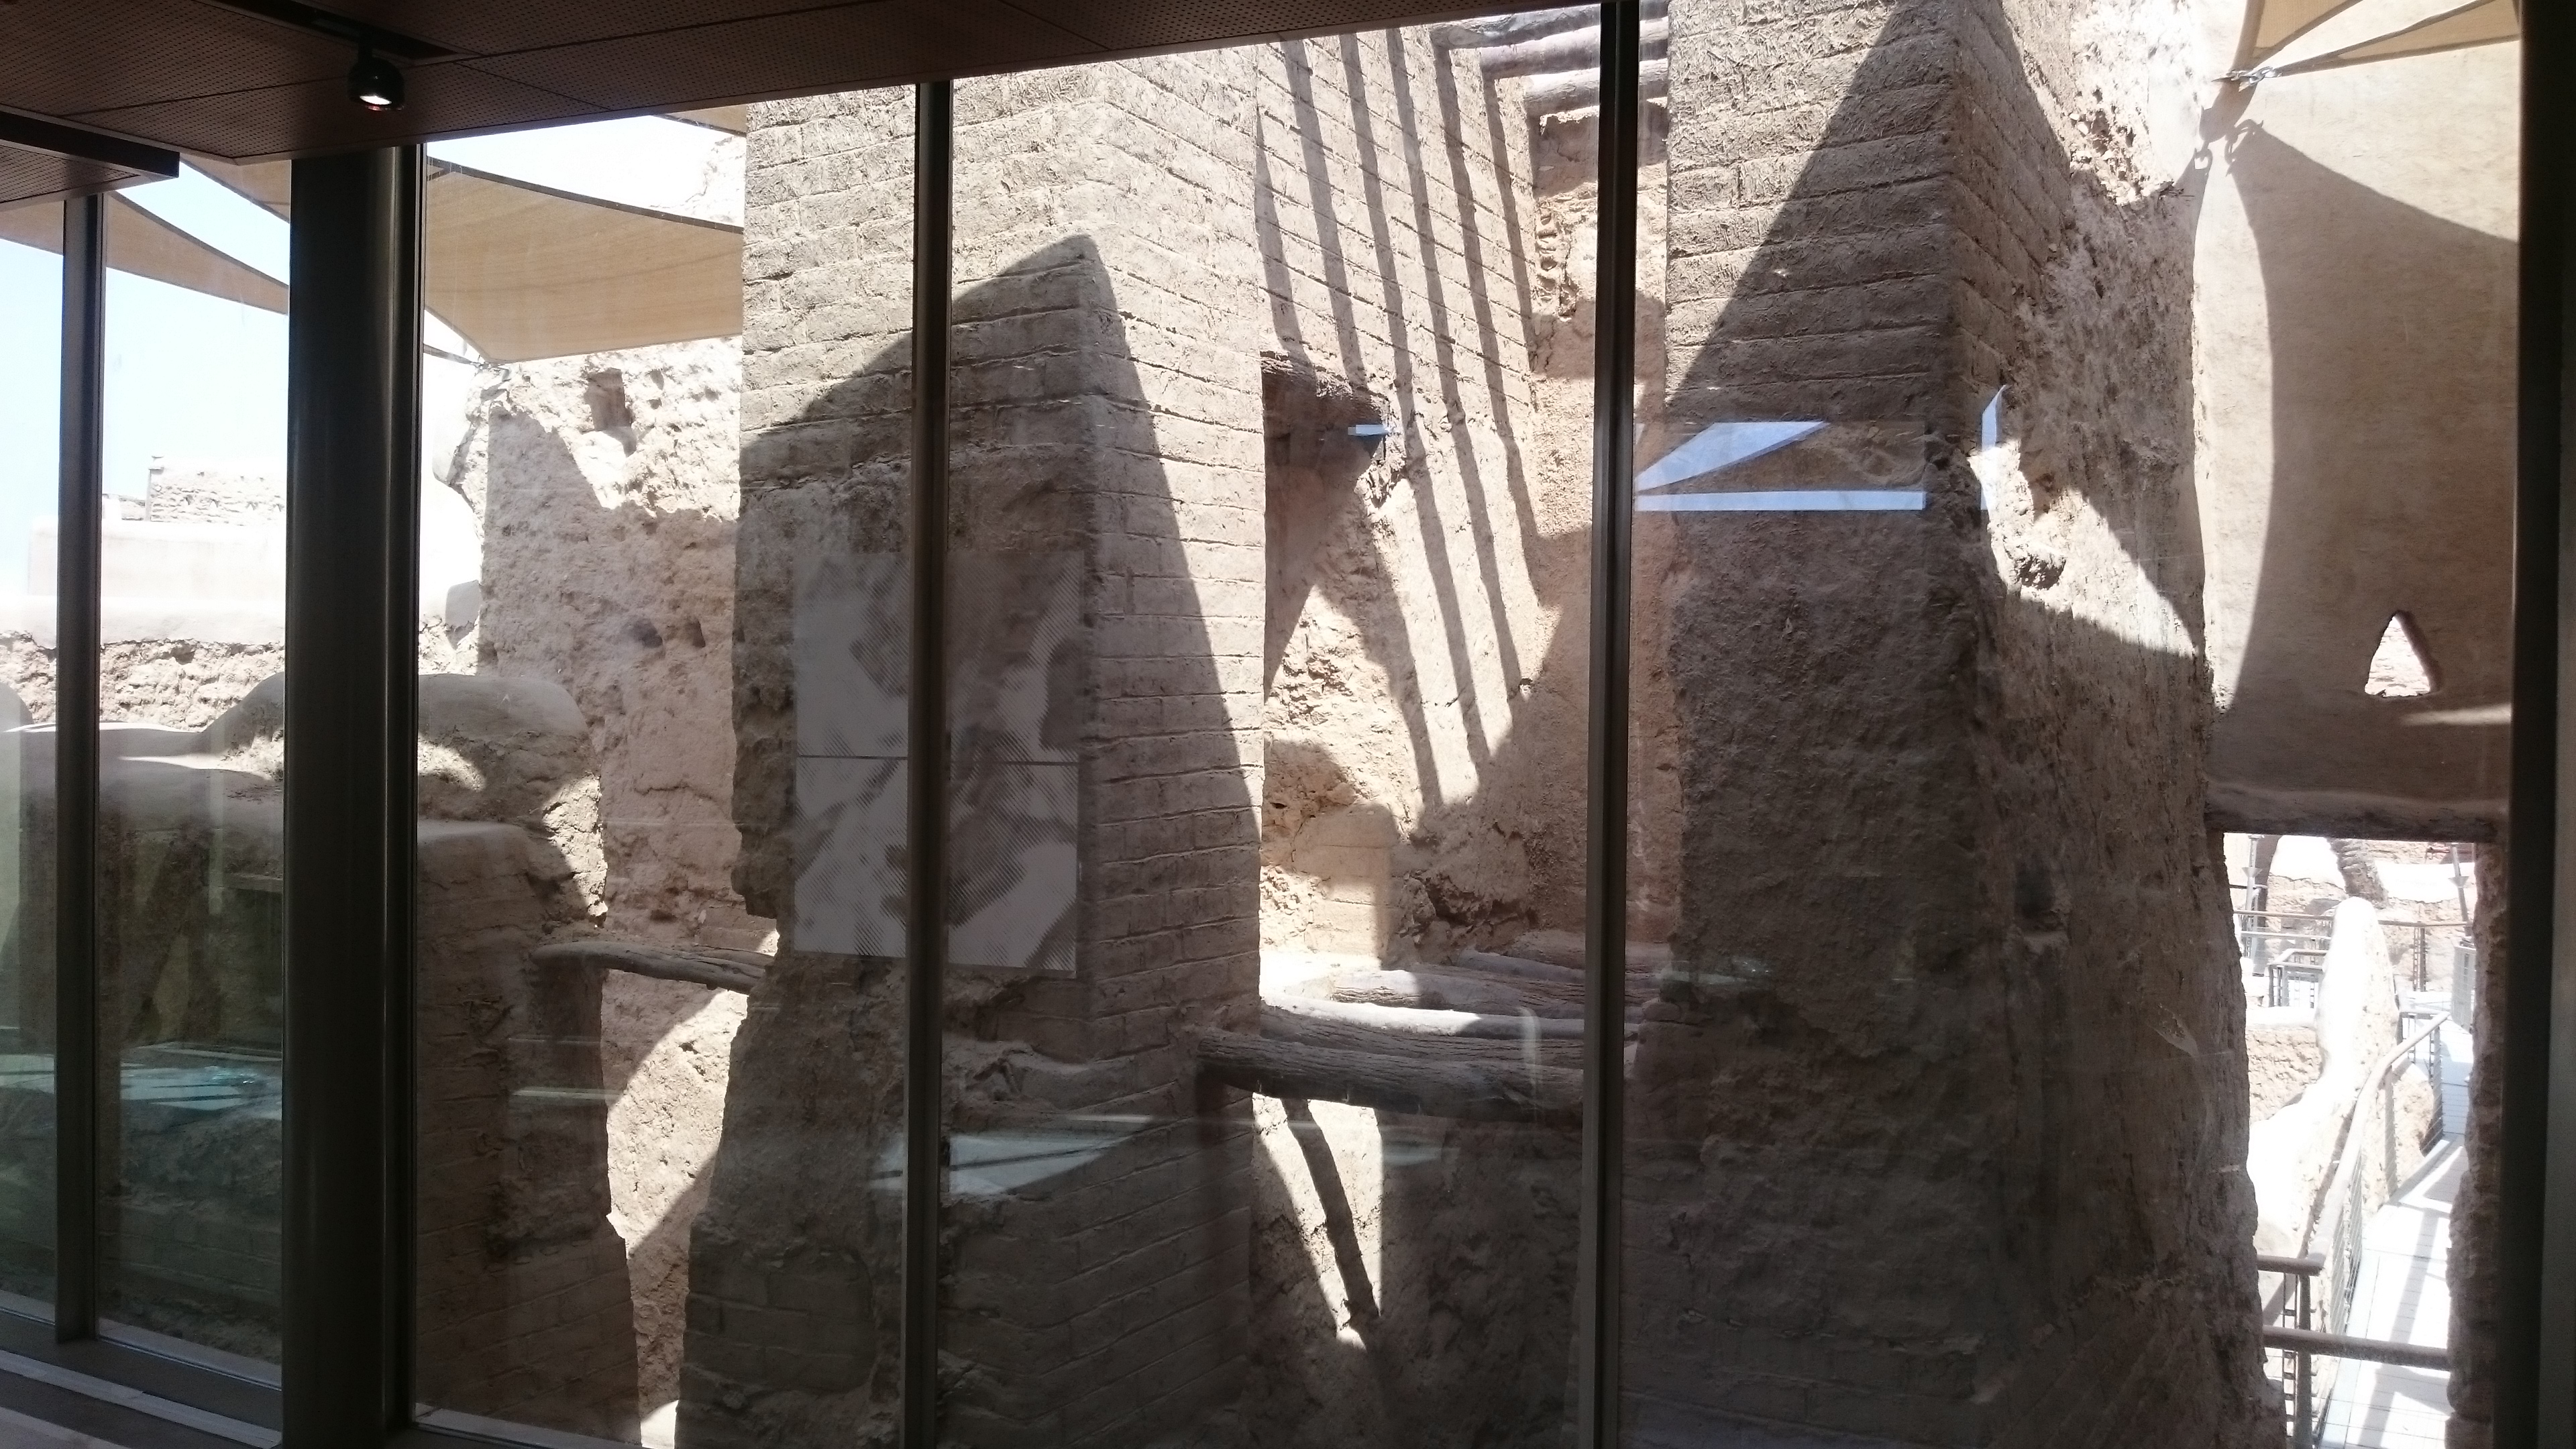 The glass walls of the museums at Historical Addiriyah allow visitors to walk through the buildings in air conditioned comfort